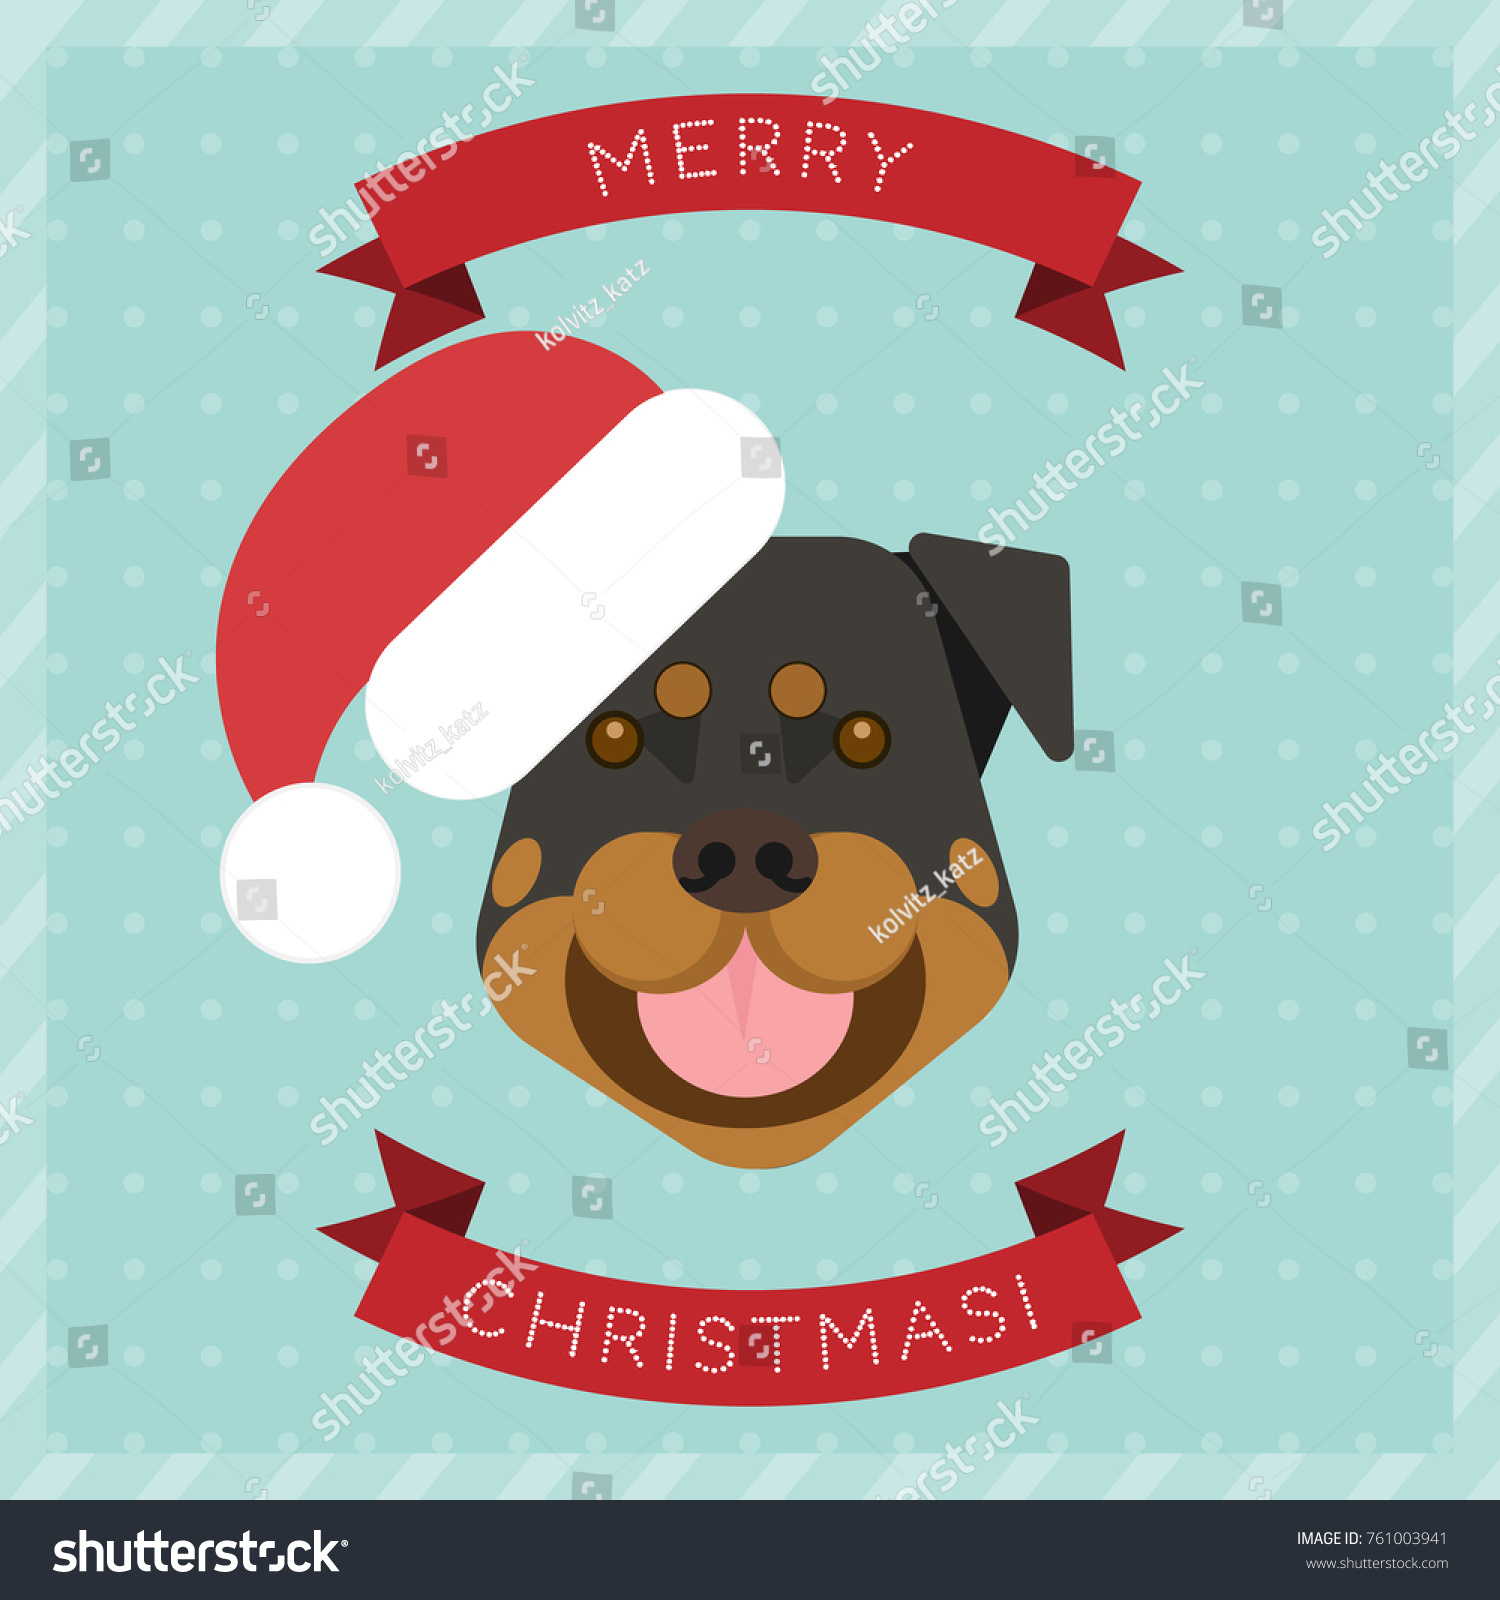 Merry christmas greeting card dog new stock vector 761003941 merry christmas greeting card with a dog new year greeting card christmas elements m4hsunfo